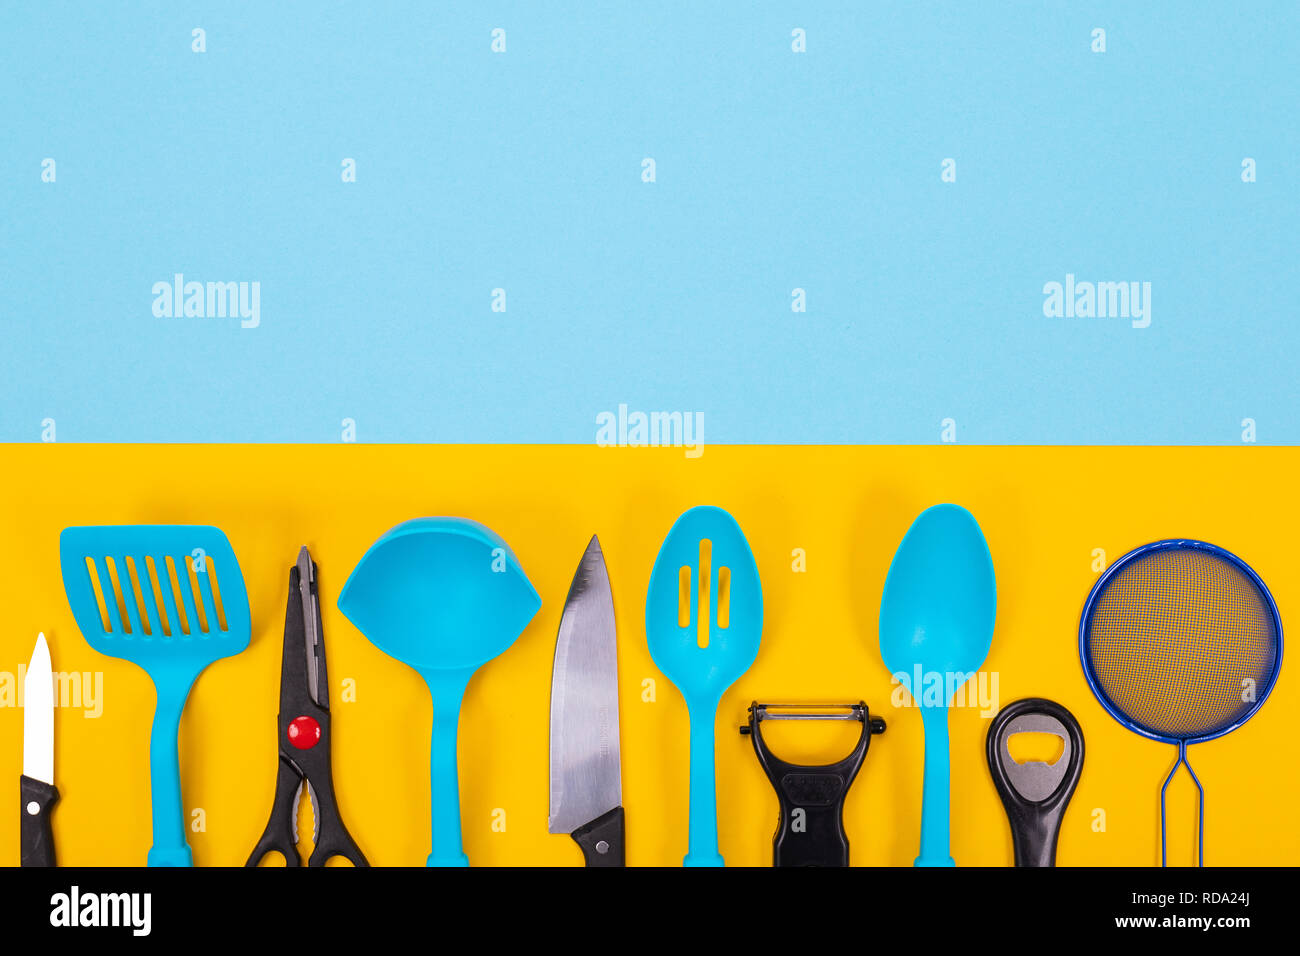 Design Concept Of Kitchen Utensils Isolated With Copyspace On Blue Yellow Background Stock Photo Alamy